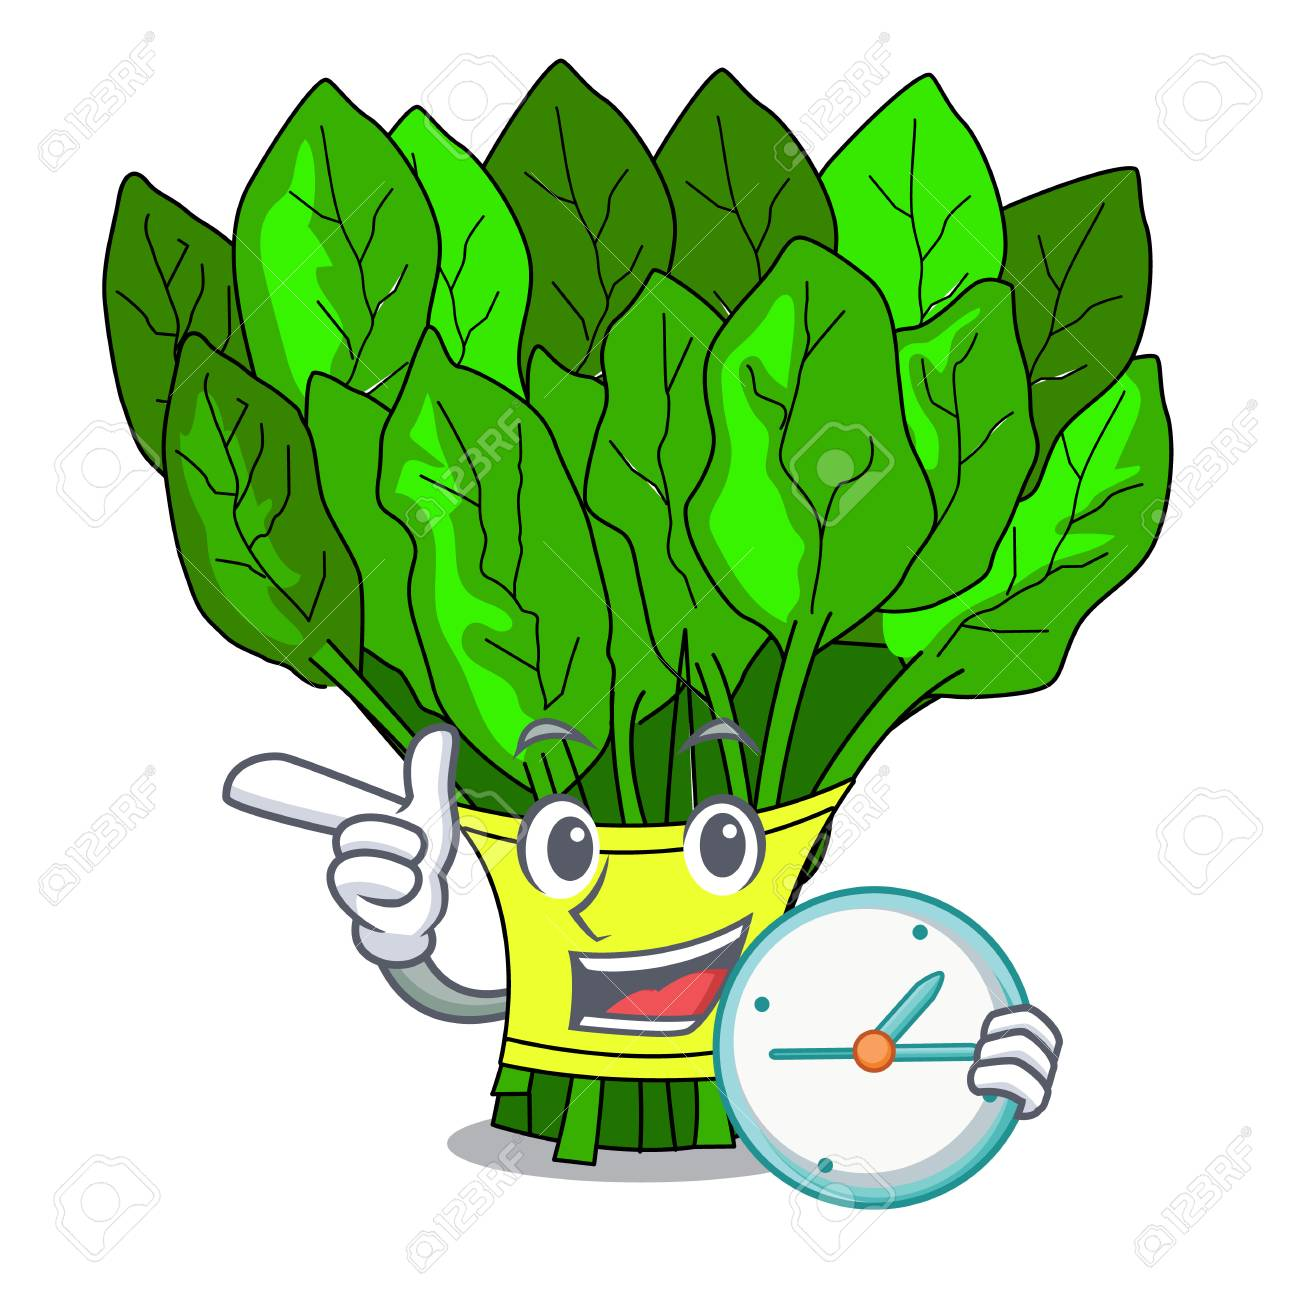 With clock vegetable spinach on a cartoon plate vector illustration - 126448023